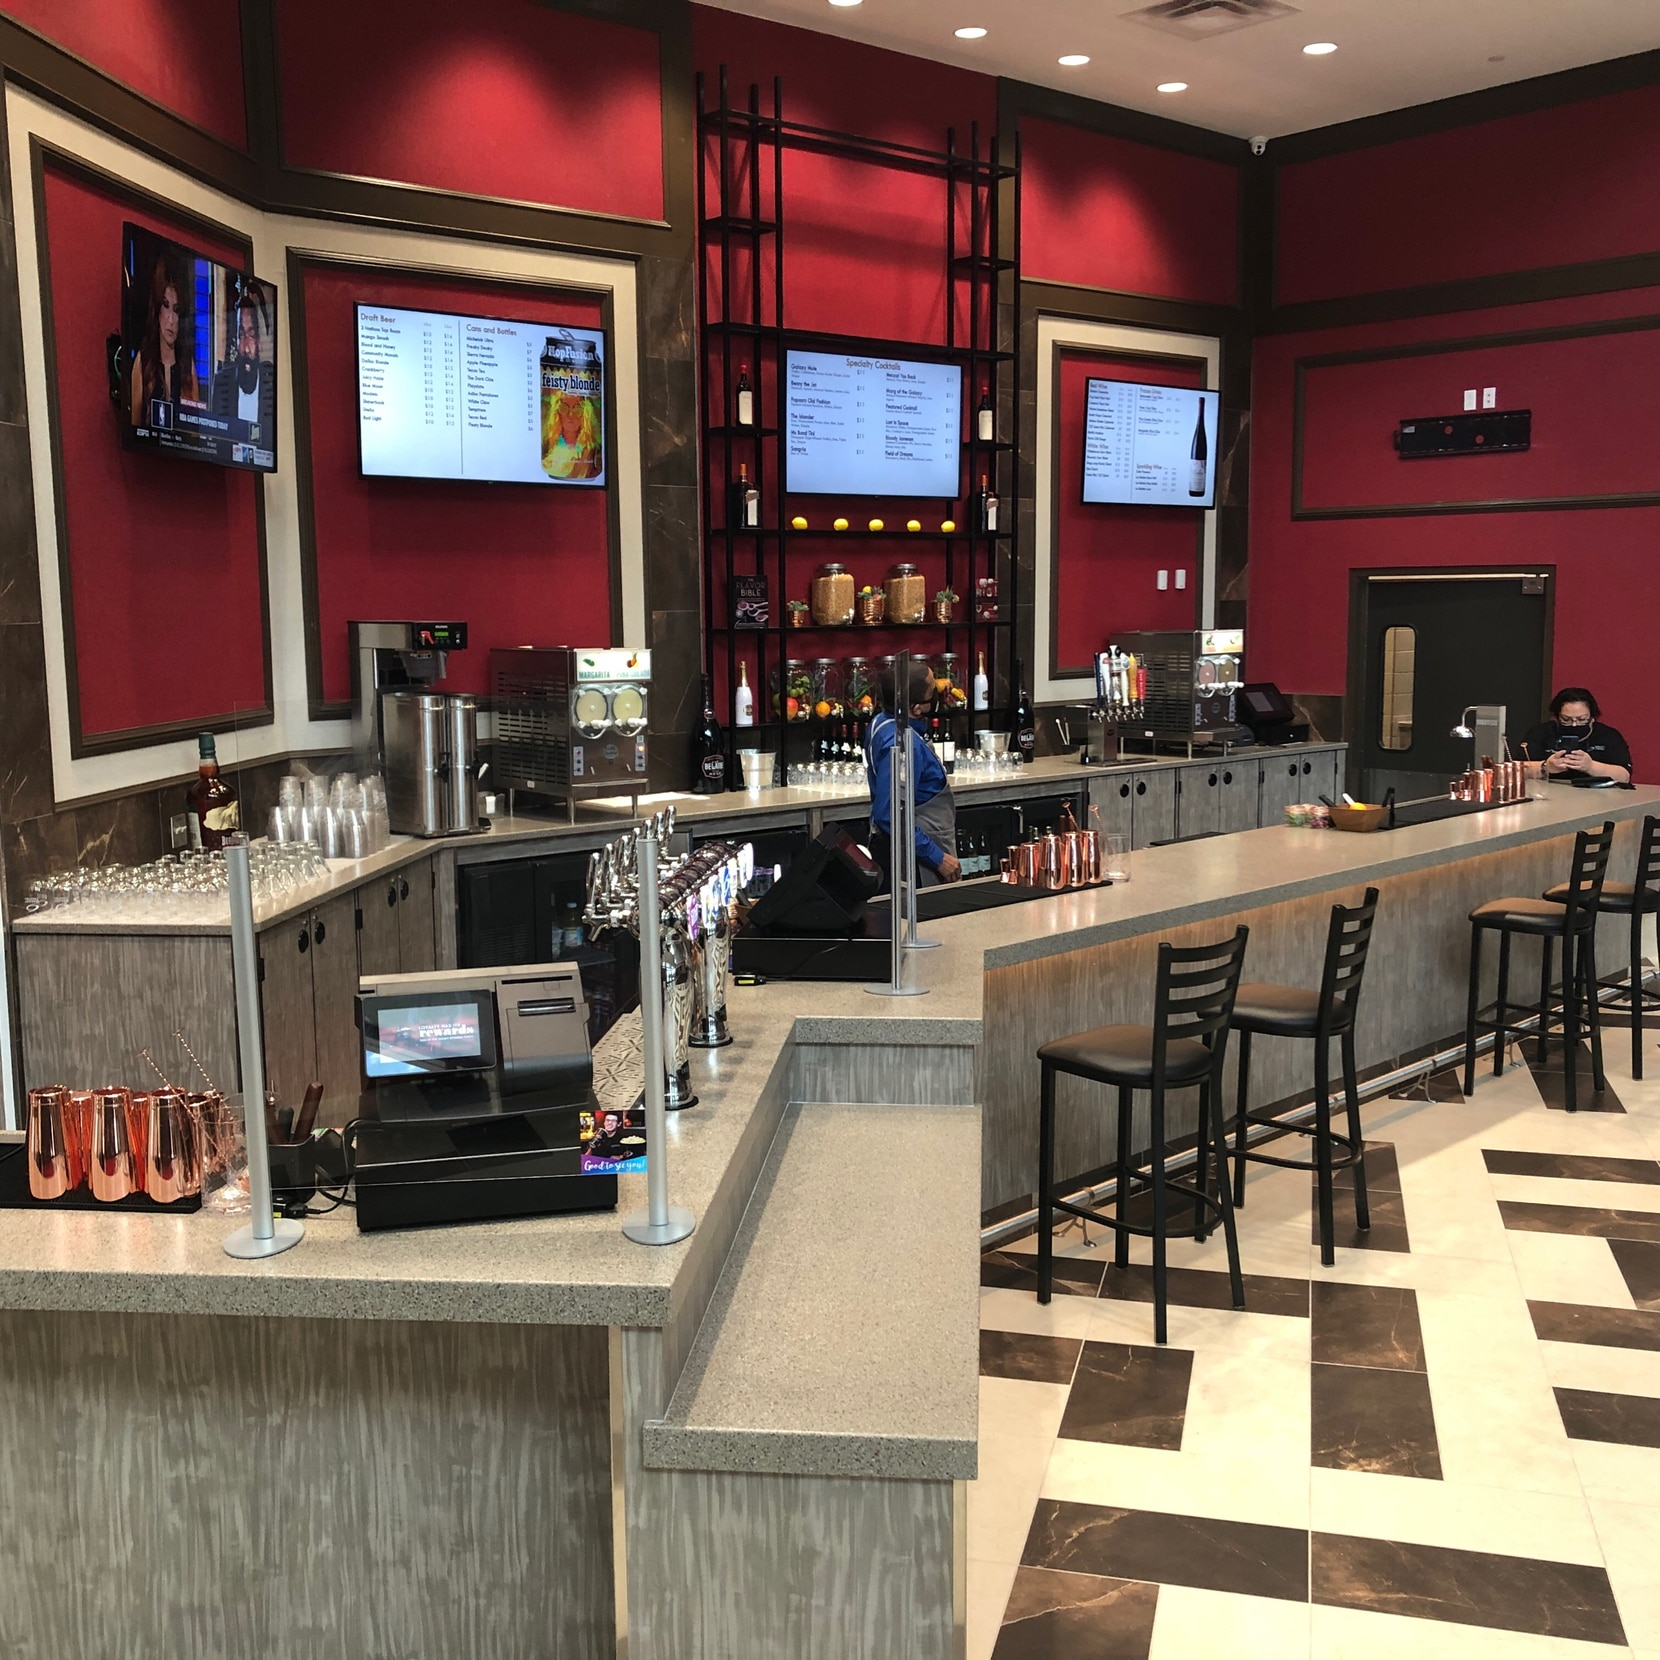 The new theater features a bar serving cocktails, beer and wine.